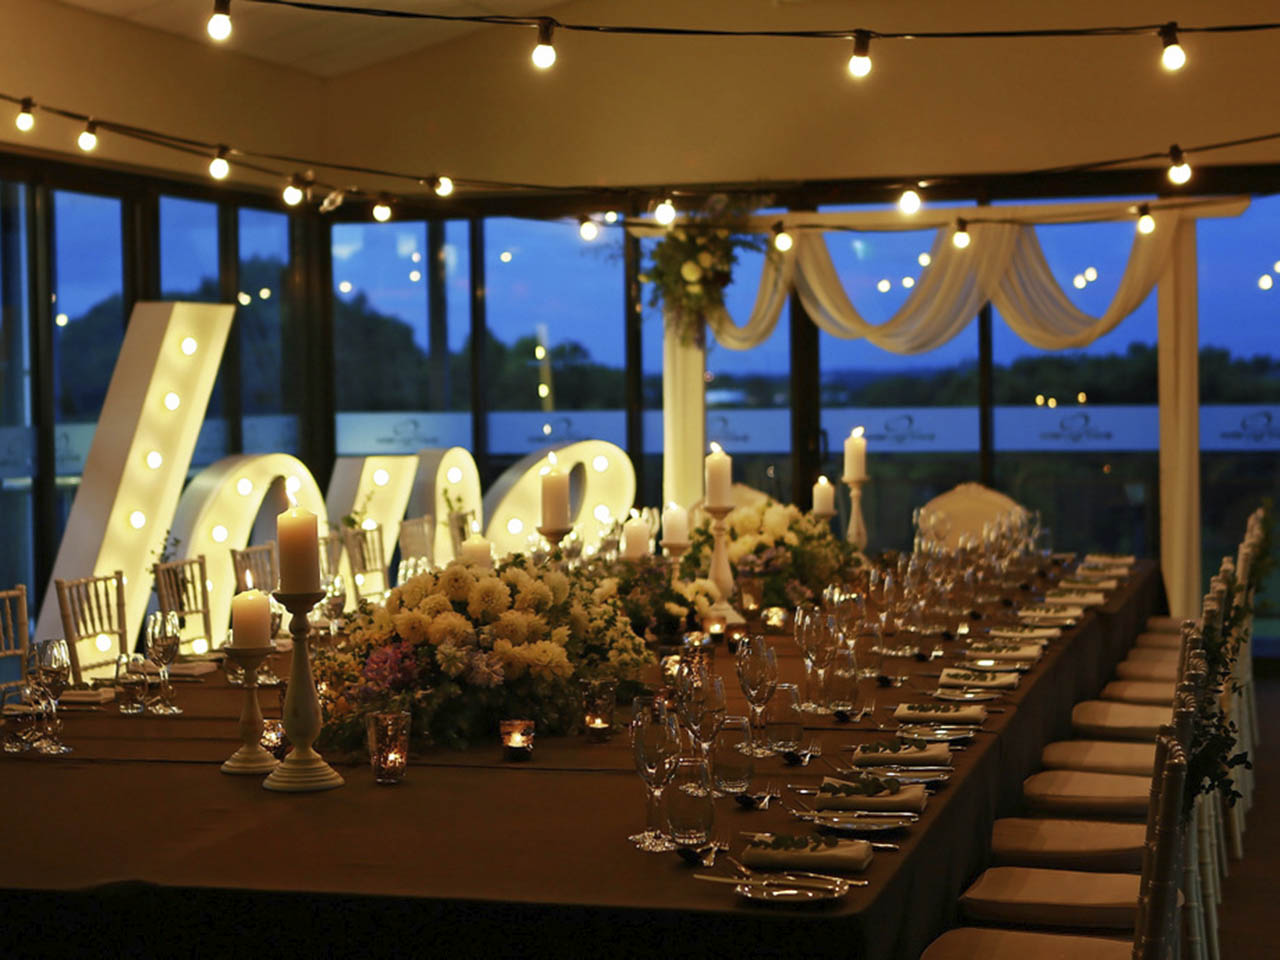 A Beautiful Table Set Out With Lights On The Celling And A Love Sign.